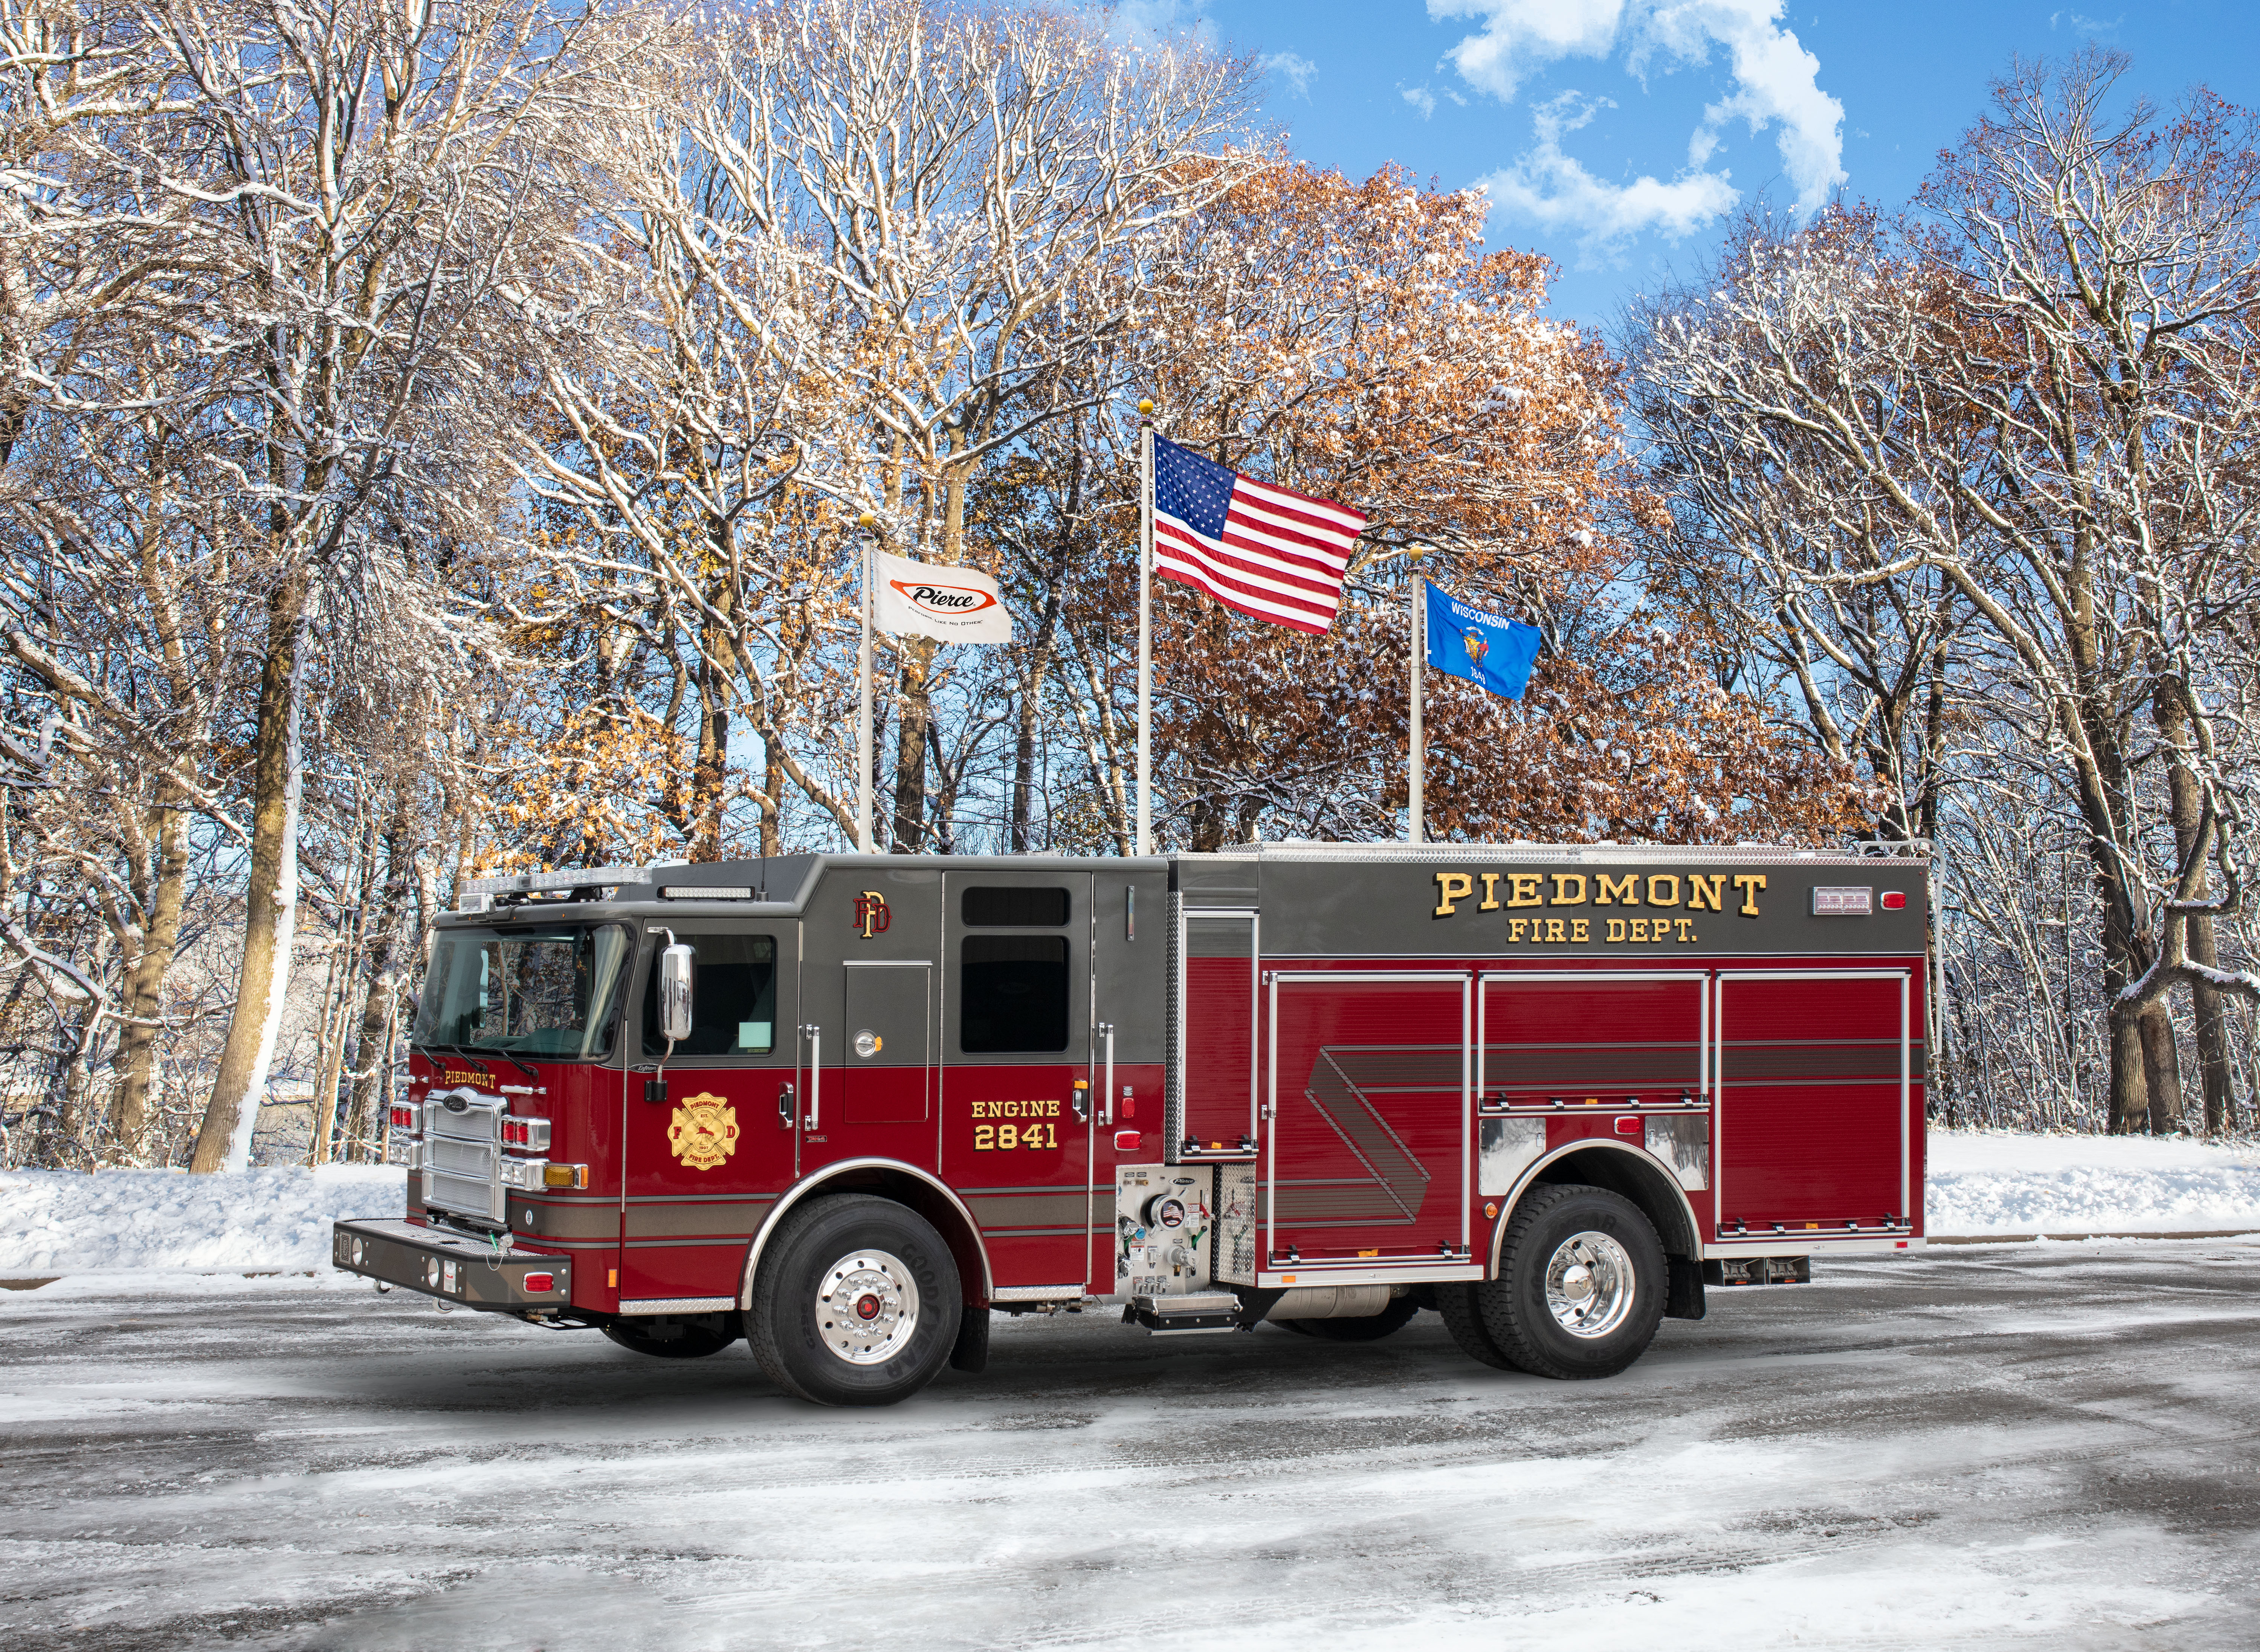 Piedmont Fire Department - Pumper